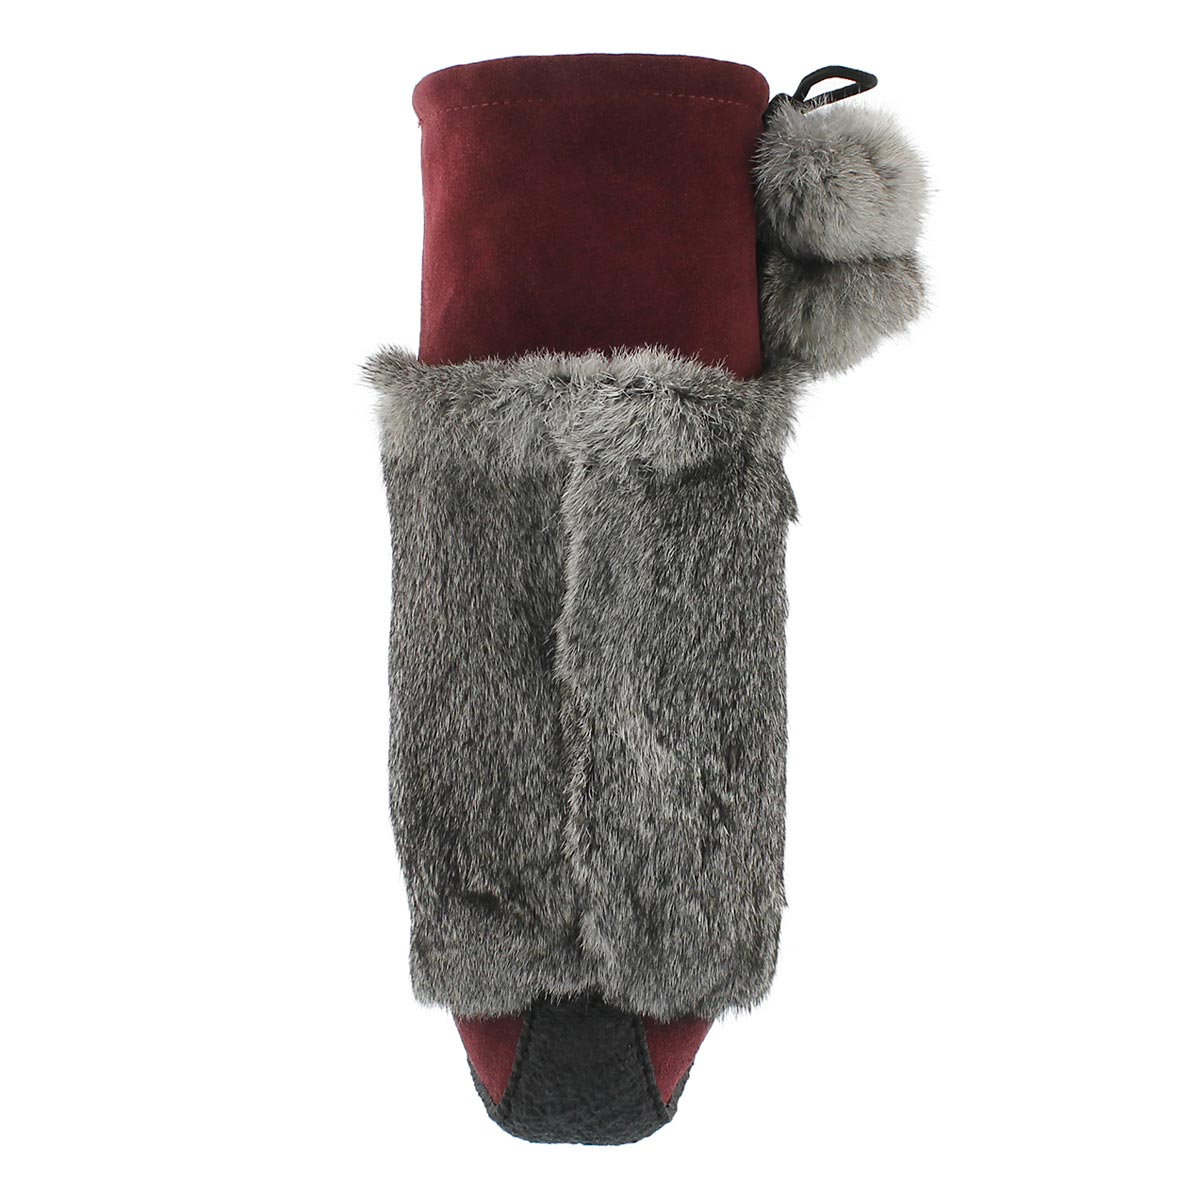 Lds bgdy/gry rabbit fur 16